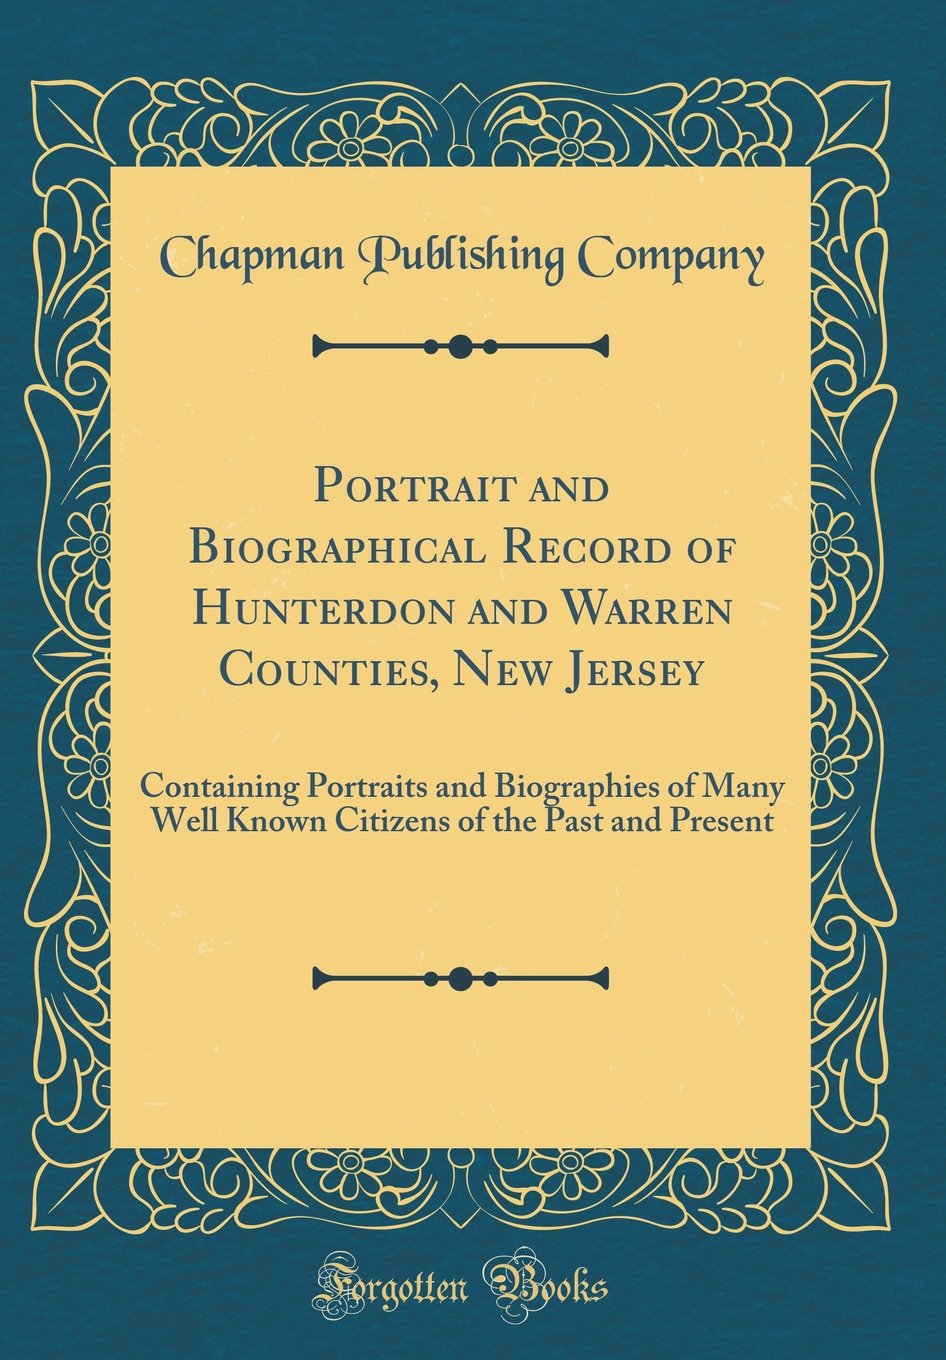 Read Online Portrait and Biographical Record of Hunterdon and Warren Counties, New Jersey: Containing Portraits and Biographies of Many Well Known Citizens of the Past and Present (Classic Reprint) ebook